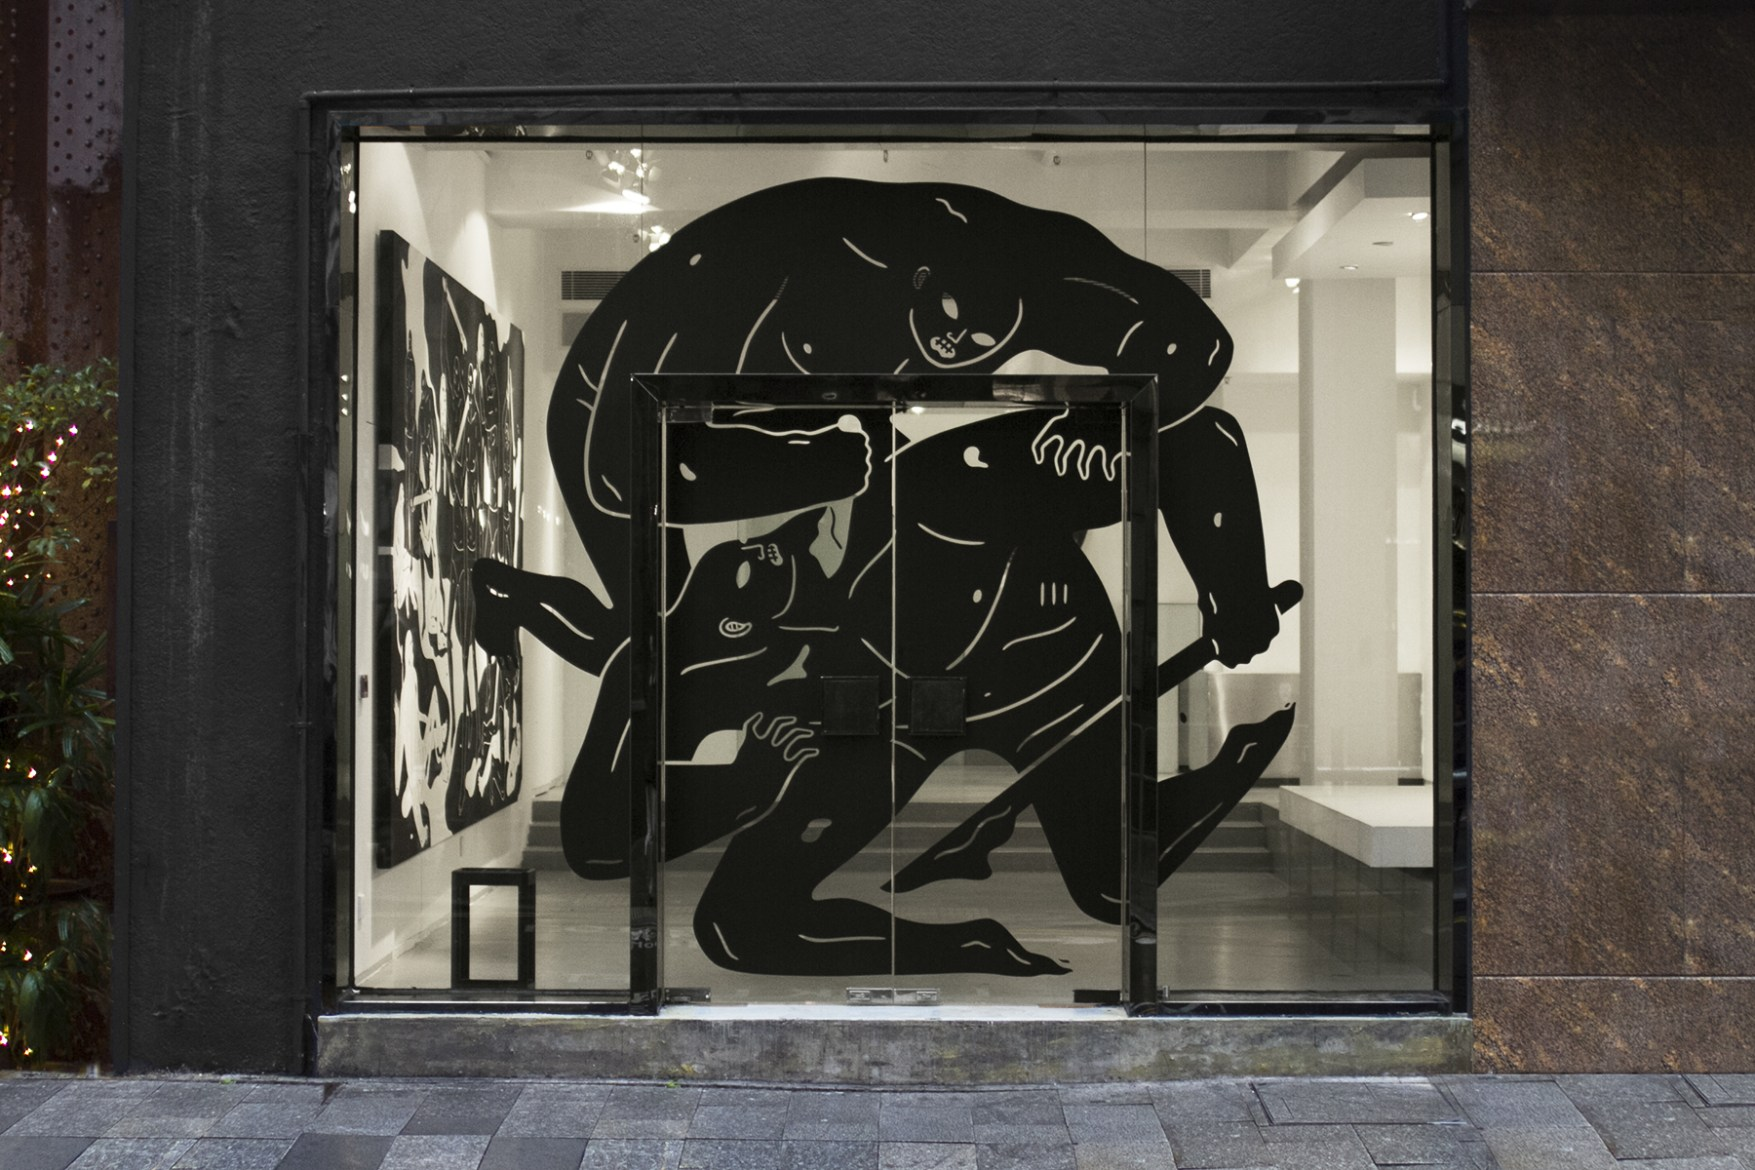 cleon-peterson-9